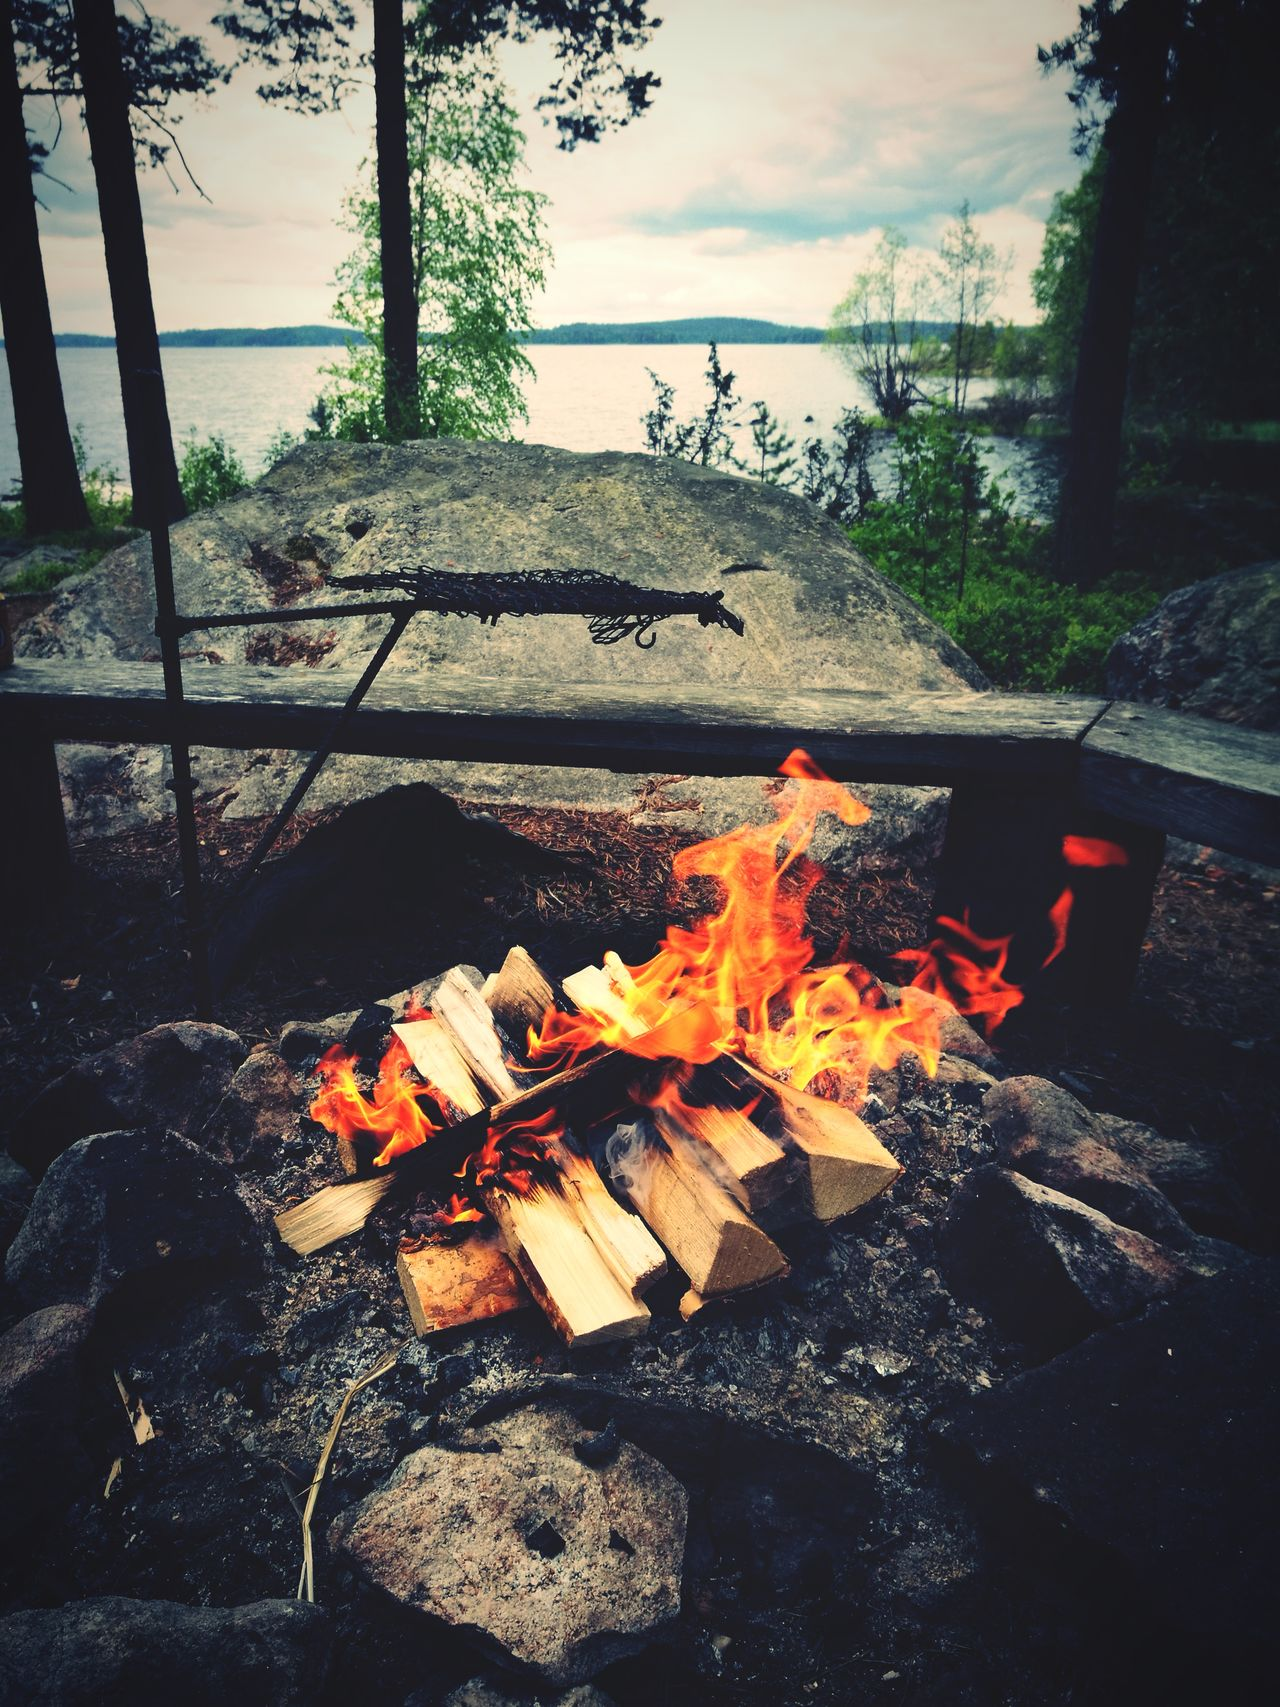 Flame Burning Heat - Temperature Outdoors Fire Pit Day Campfire No People Bonfire Tree Nature Sky Finland Karelia North Nordic Nurmes Lifestyle Fire Life In Finland Finnish Lifestyle